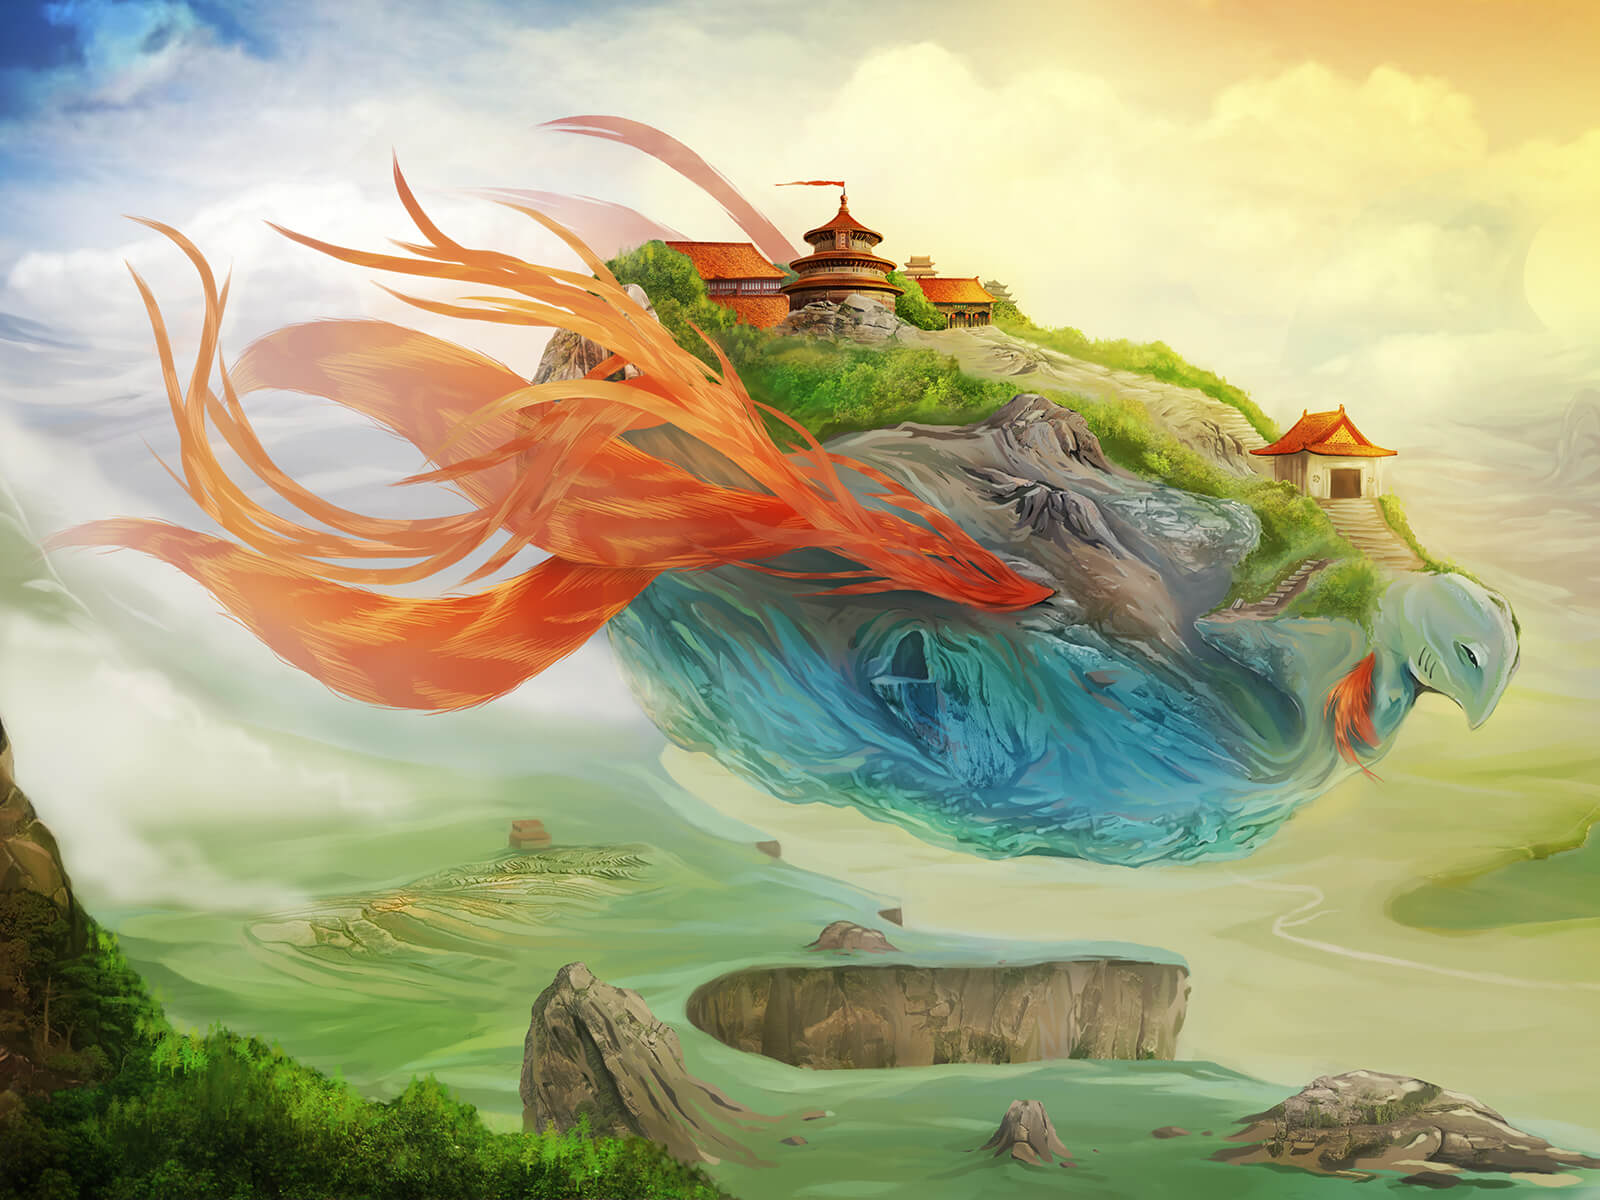 A village stands on the back of a mythical, red-frilled, blue beast drifting above a surreal, cloudy plain.